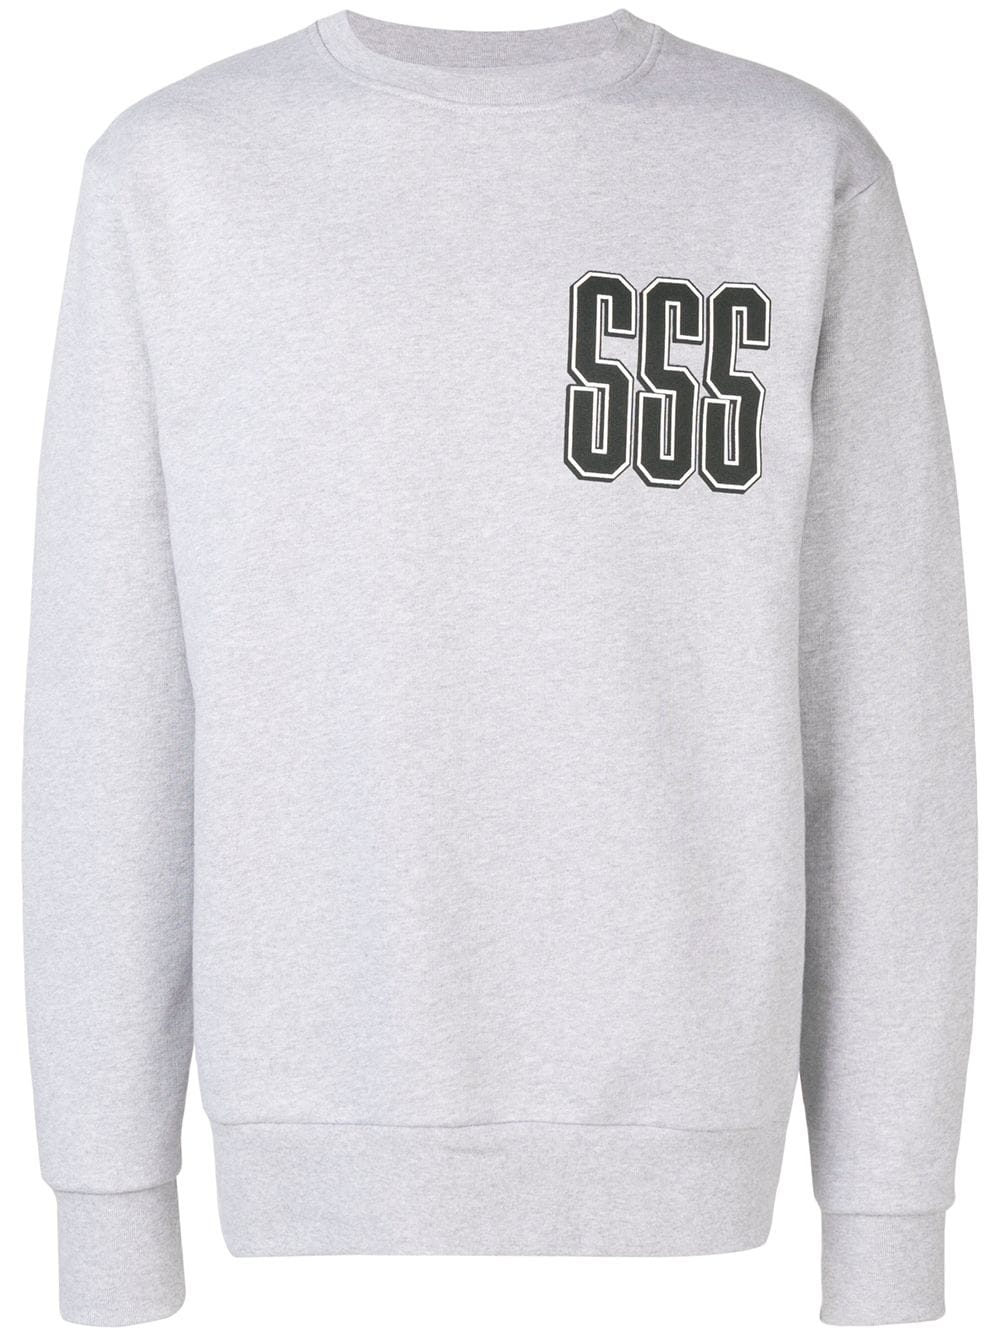 TOWNHIGH1 SWEAT S39 GREY